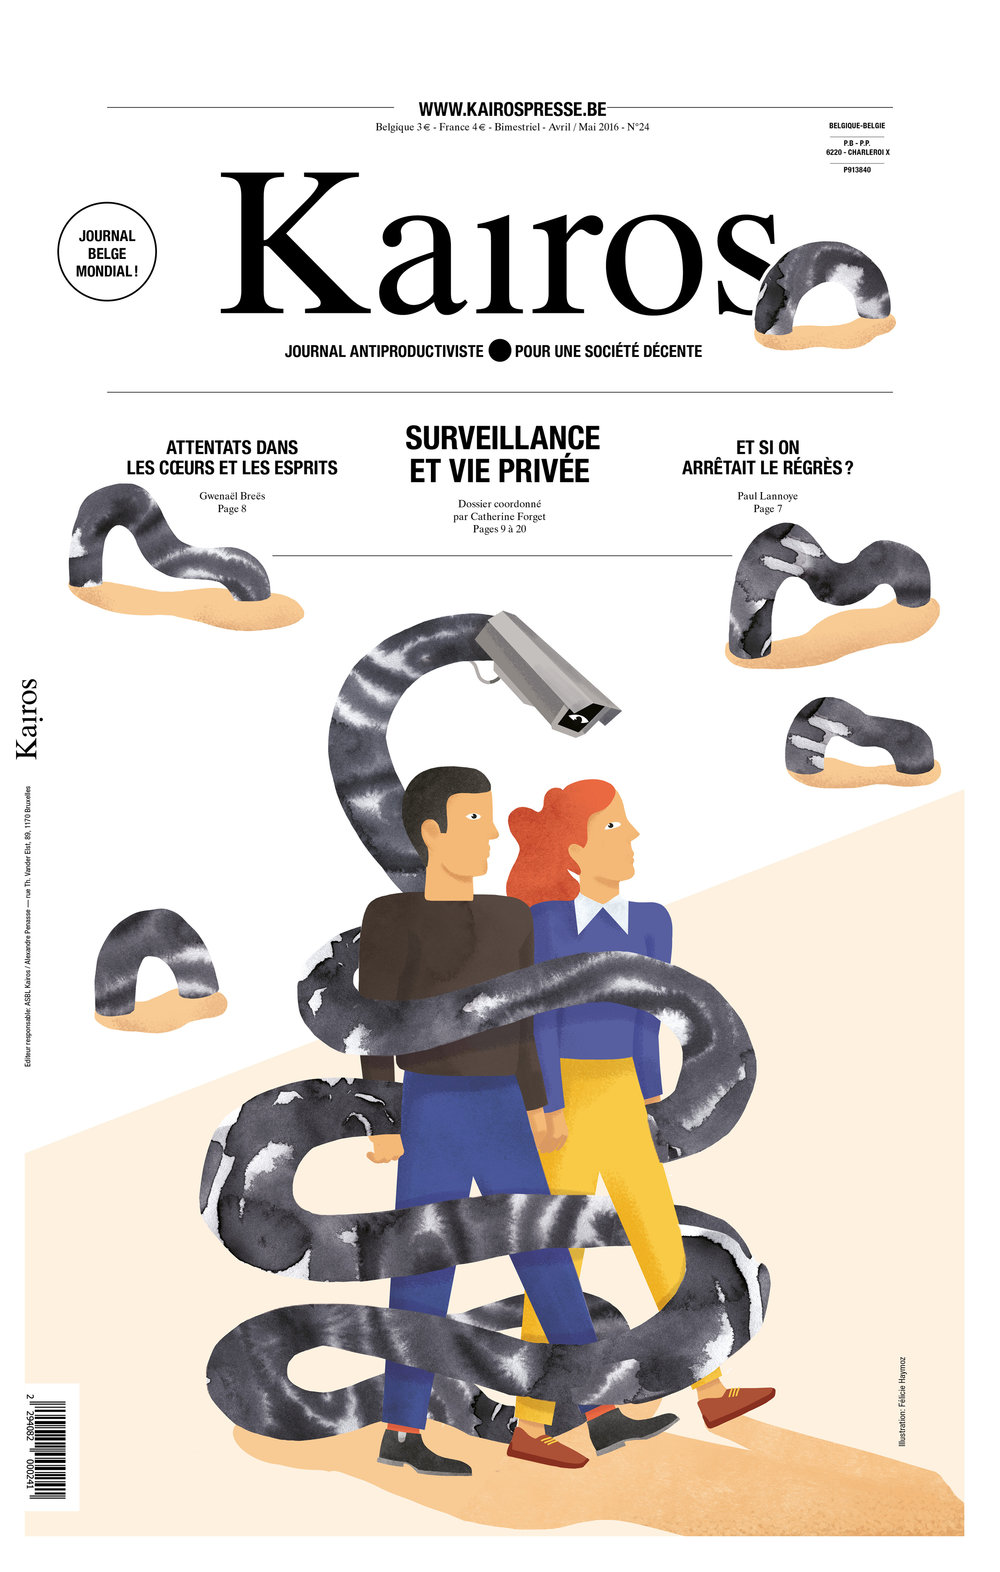 Cover for the Kairos Magazine Issue 24 about surveillance and privacy